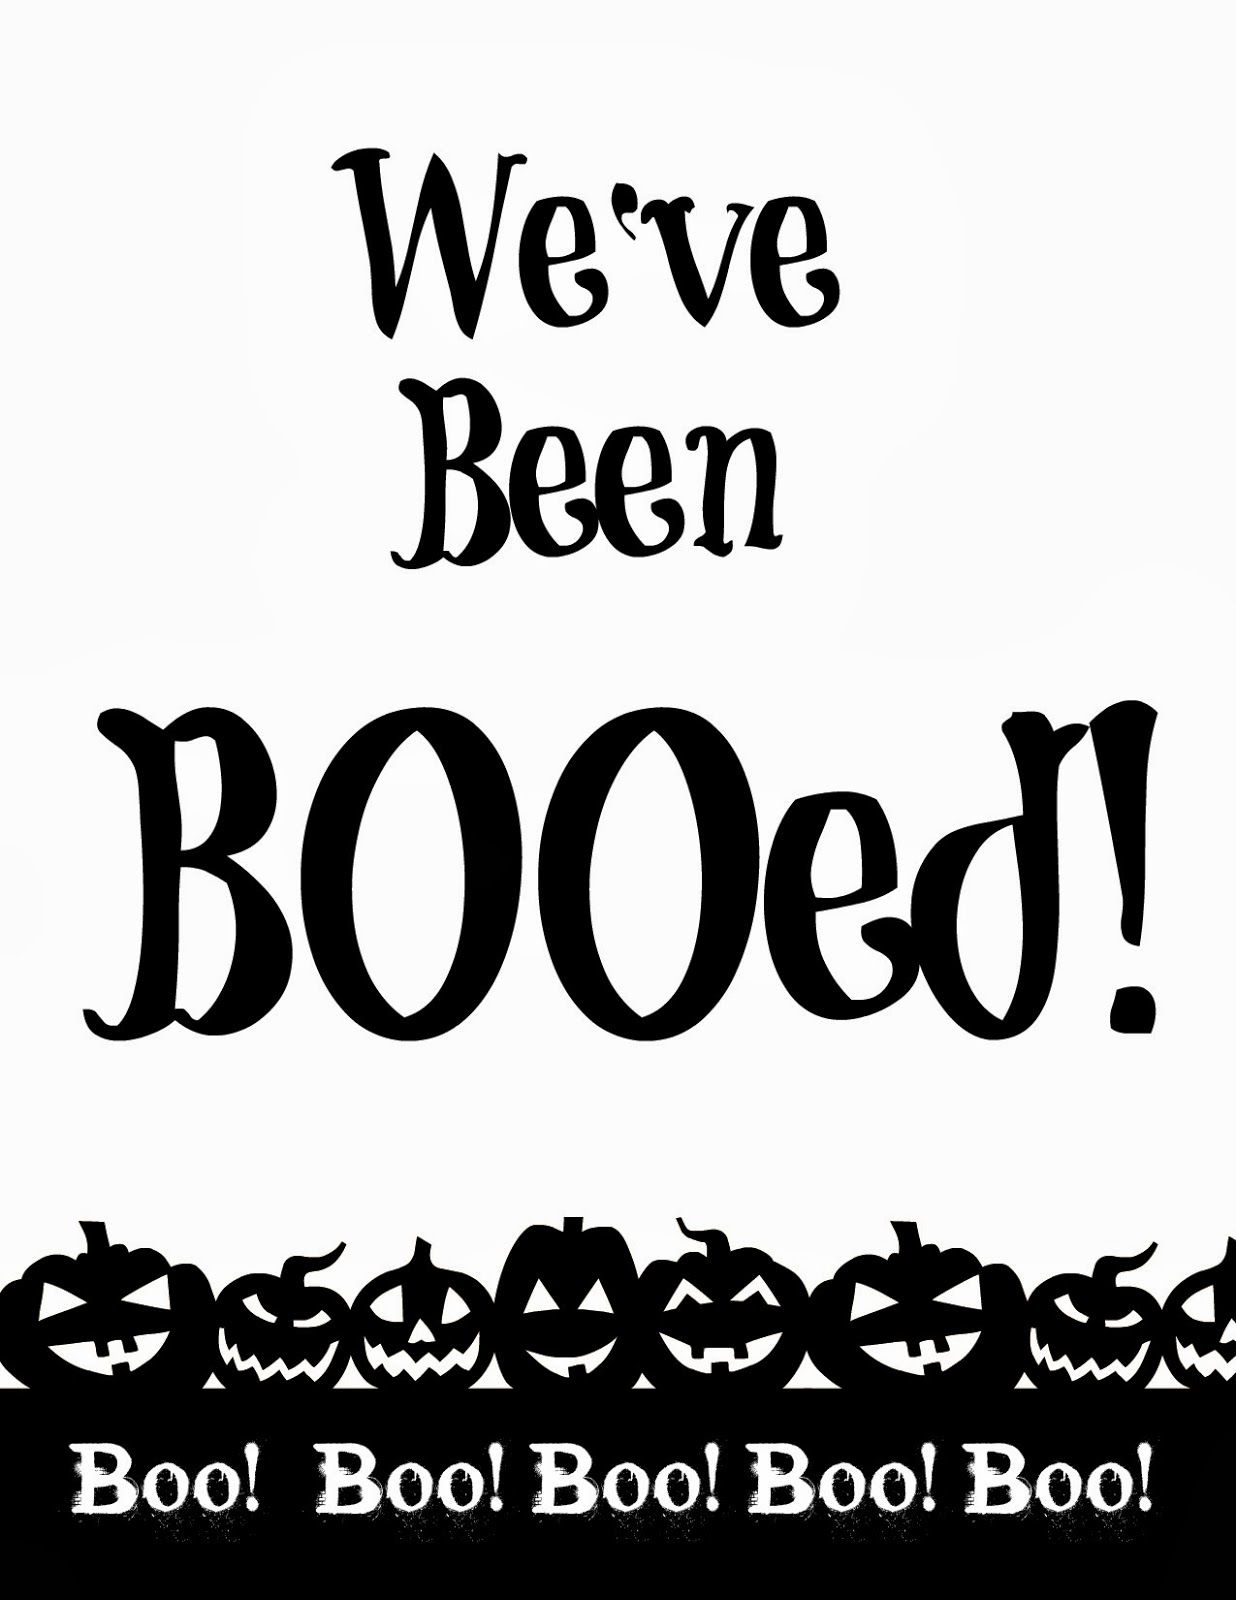 You Ve Been Booed Free Printables 4 You With Love